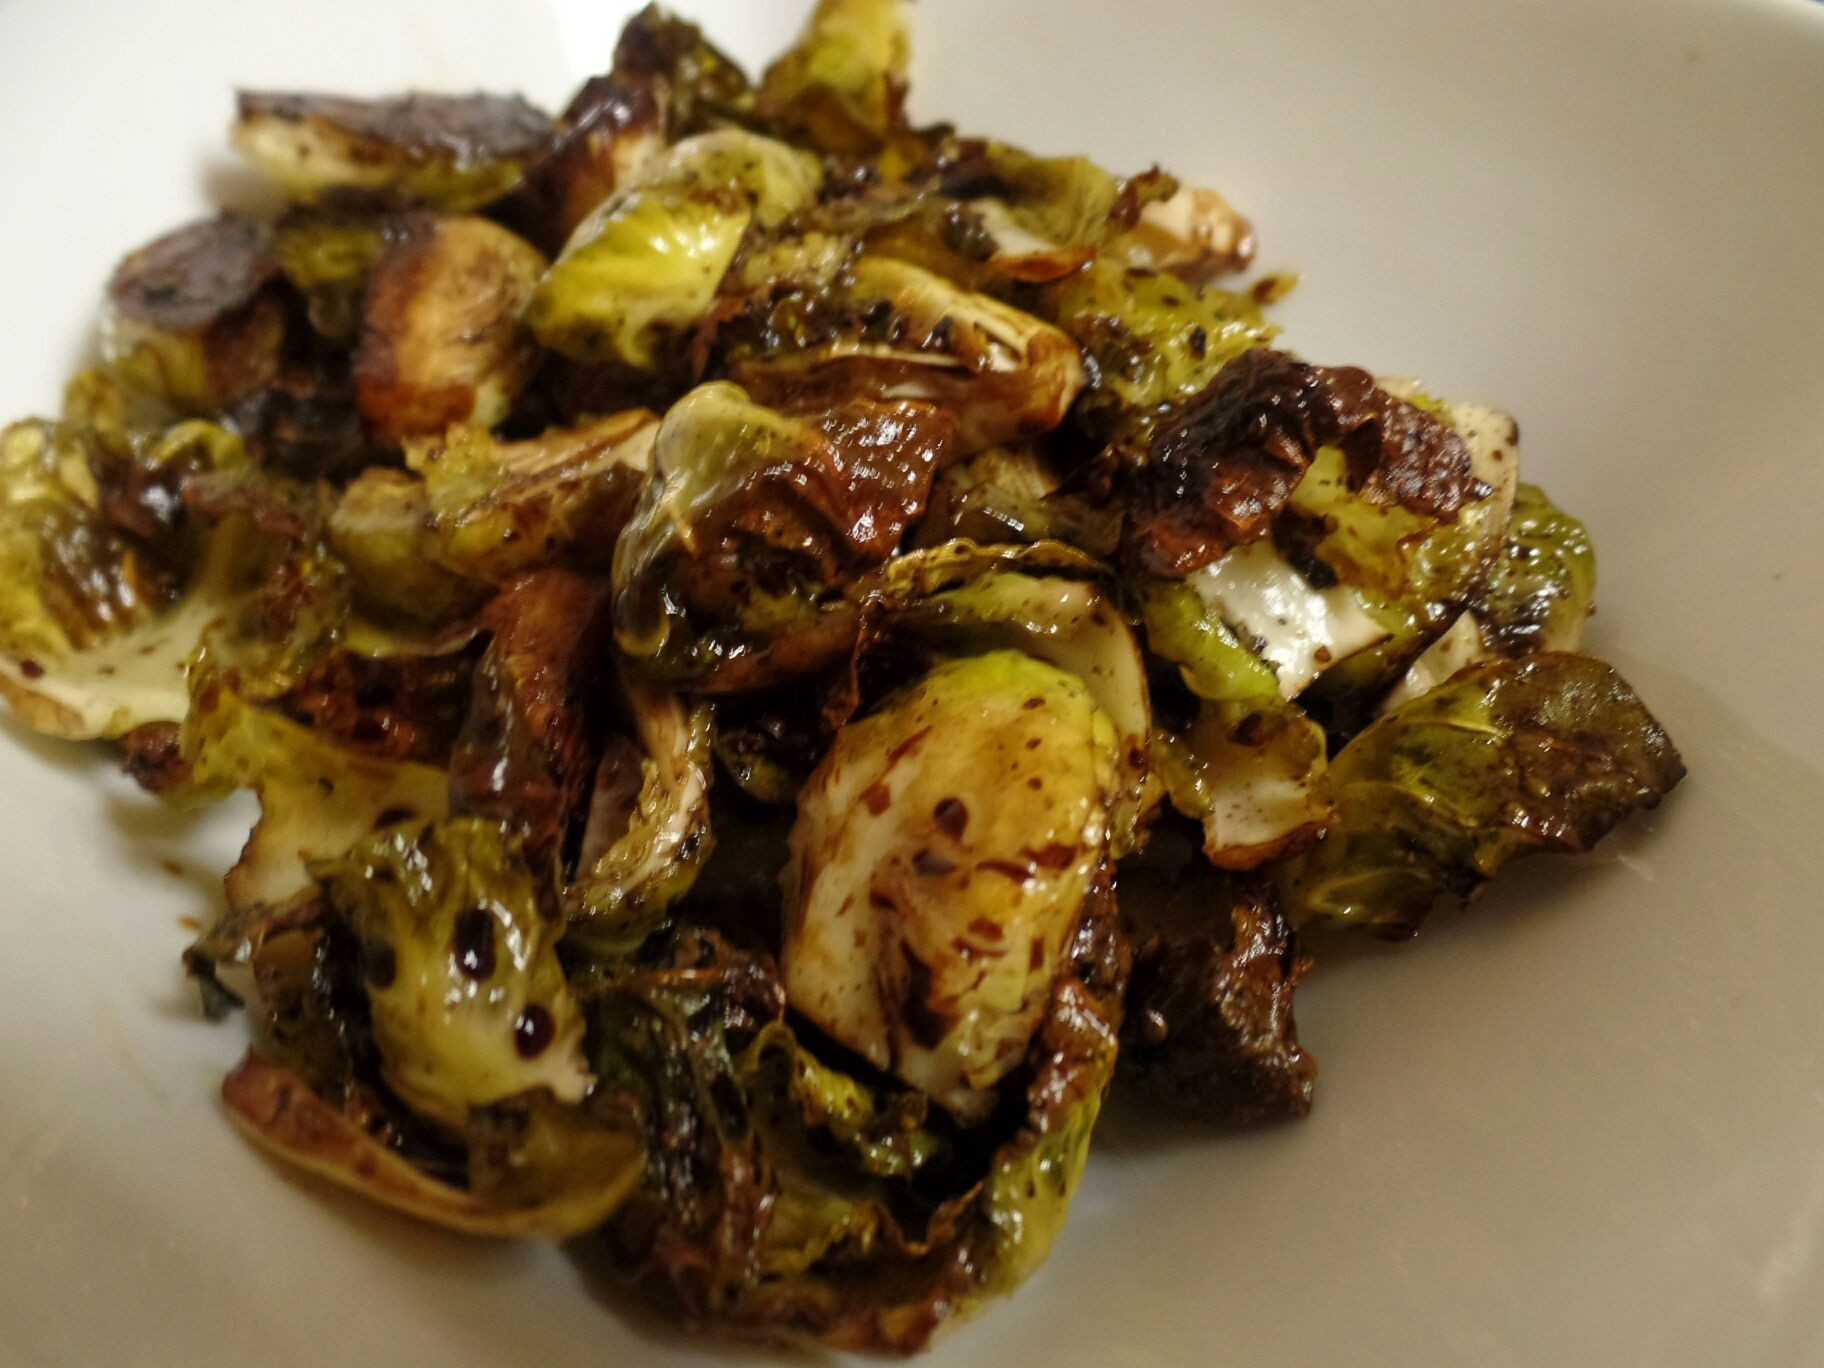 Balsamic roasted brussel sprouts #ilovetumeric #ilovebrusselsprouts #brusselsprouts #foodpic #foodgasm #foodporn #foodie #foodpedia #foodhunter #foodbloggers #eatwell #eathealthy #healthyeats #healthyfood #healthyeating #healthyfoods #realfood #detroitfoodnetwork #detroitfoodie #detroitfoodies #detroitfood #delish #delicious #deliciousfood #deliciousfoods #deliciousness #instafood #foodnetwork #owntv #wholefoods